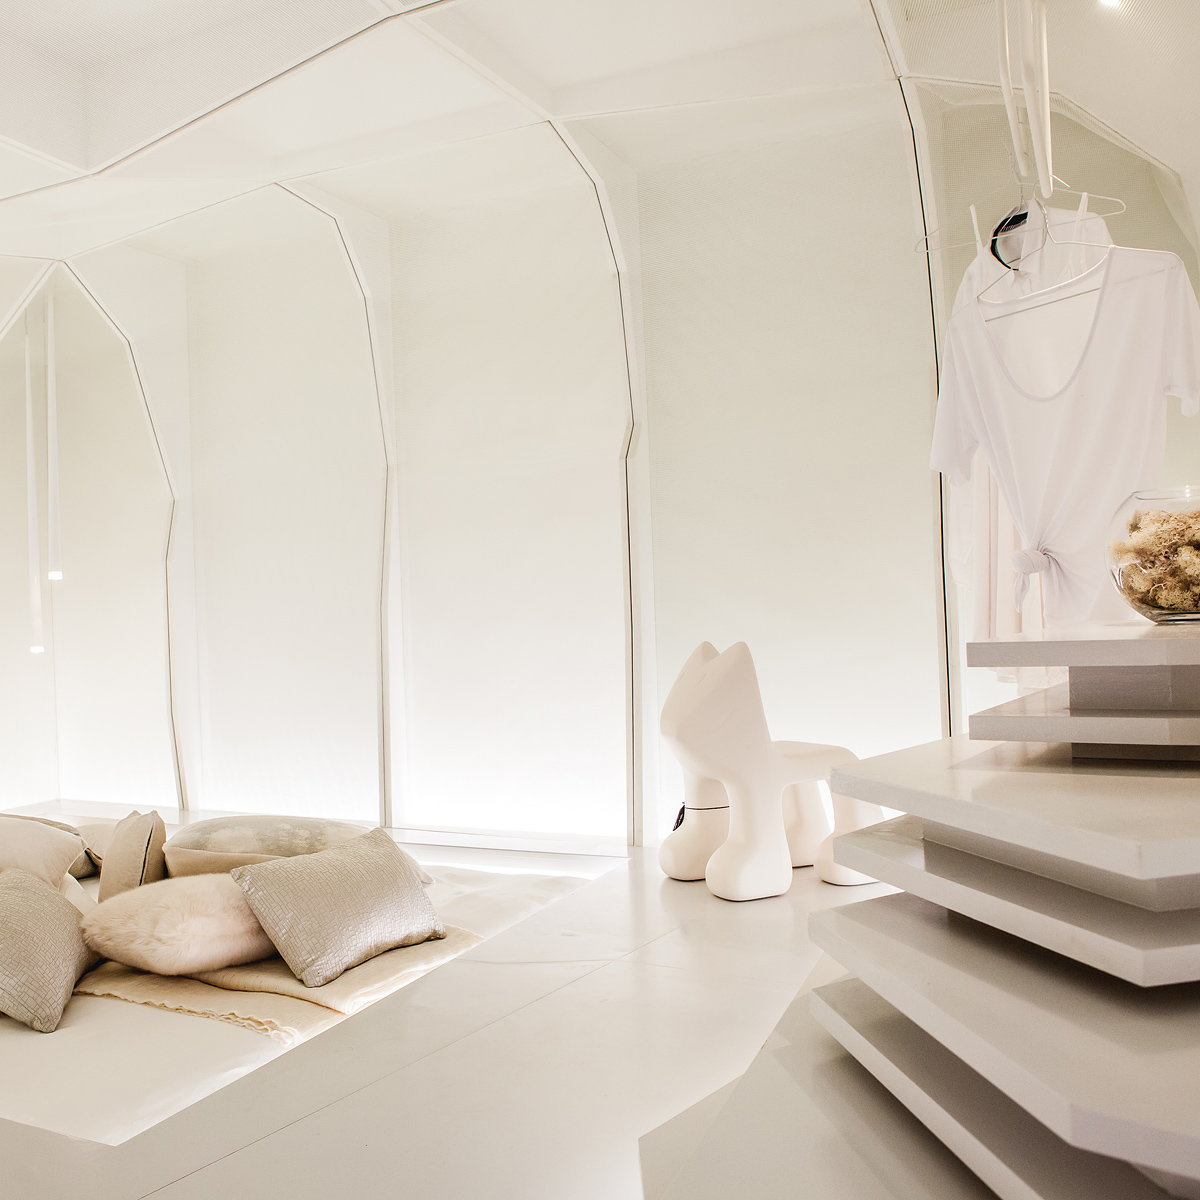 Guestroom Designs for Global Tribes - Sleep Set Competition Reveals New Ways of Looking at Hotel Design